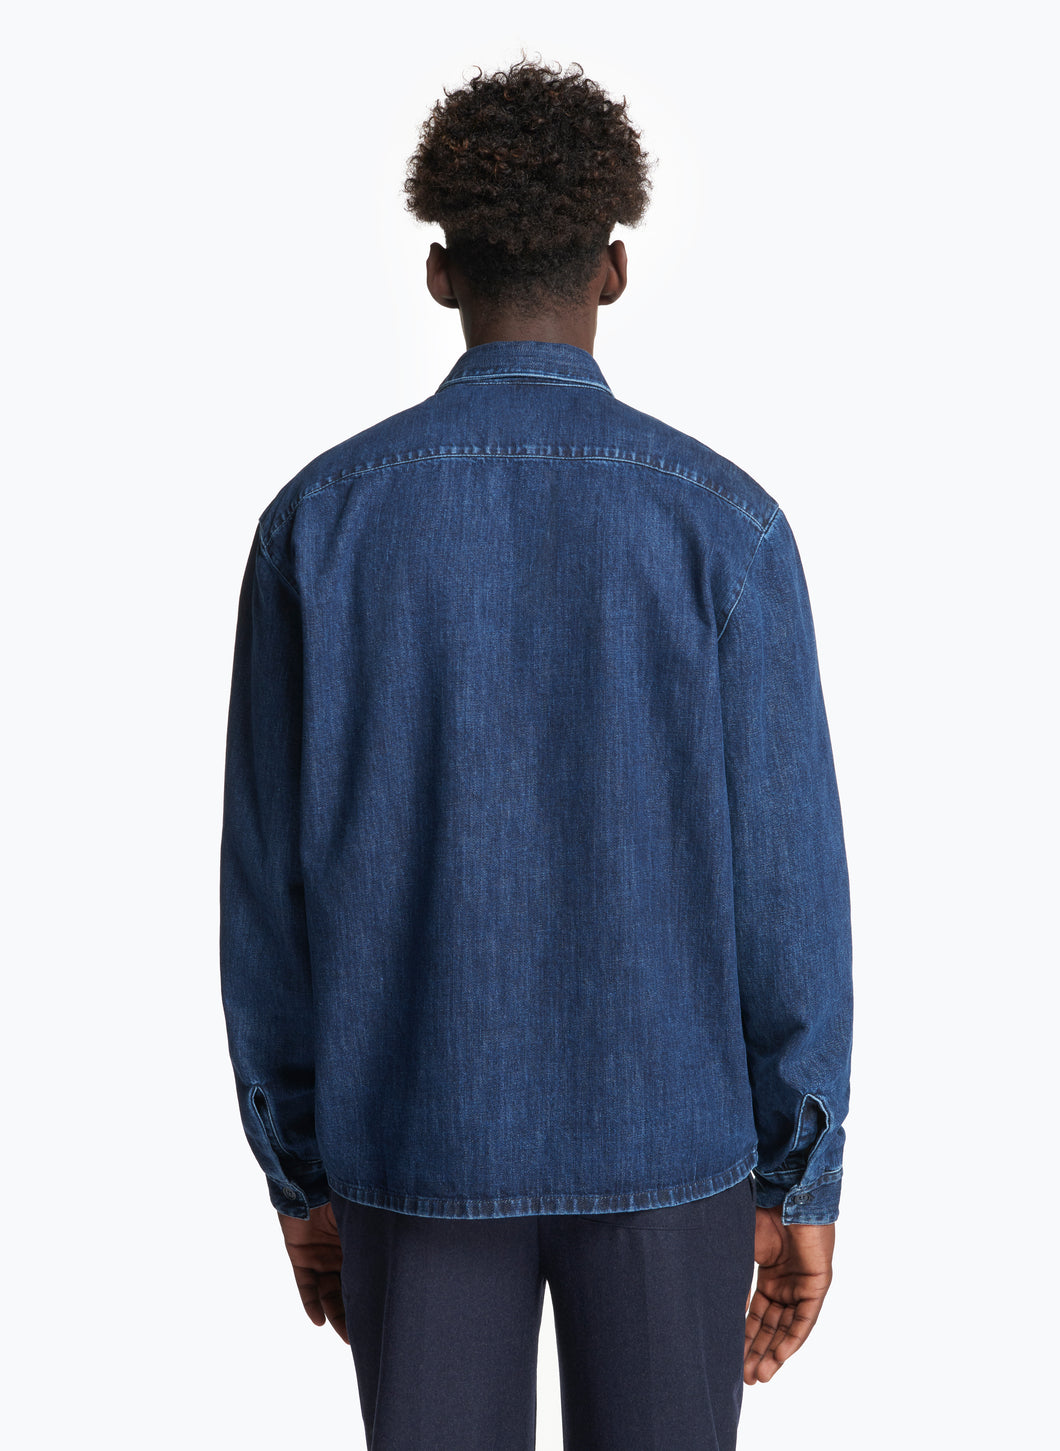 Overshirt with Chest Patch Pocket in Stoned Denim